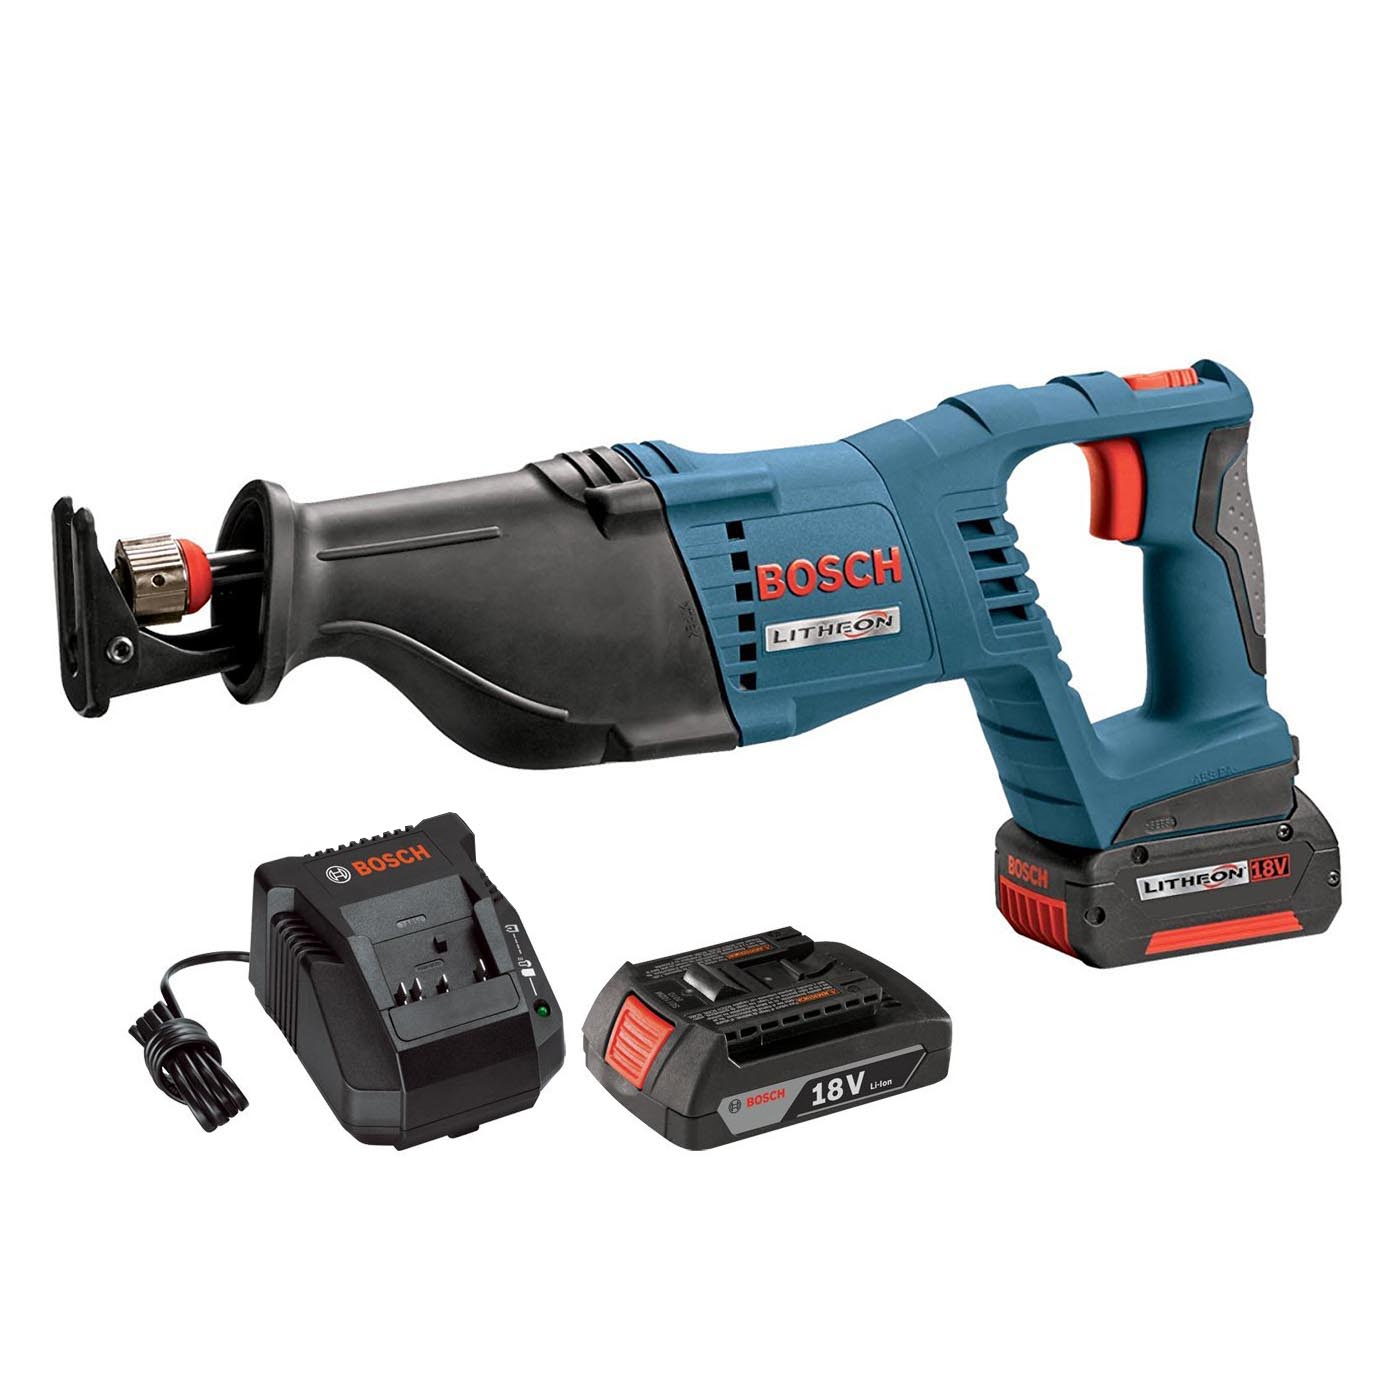 bosch 18 volt drill driver kit circular saw. Black Bedroom Furniture Sets. Home Design Ideas